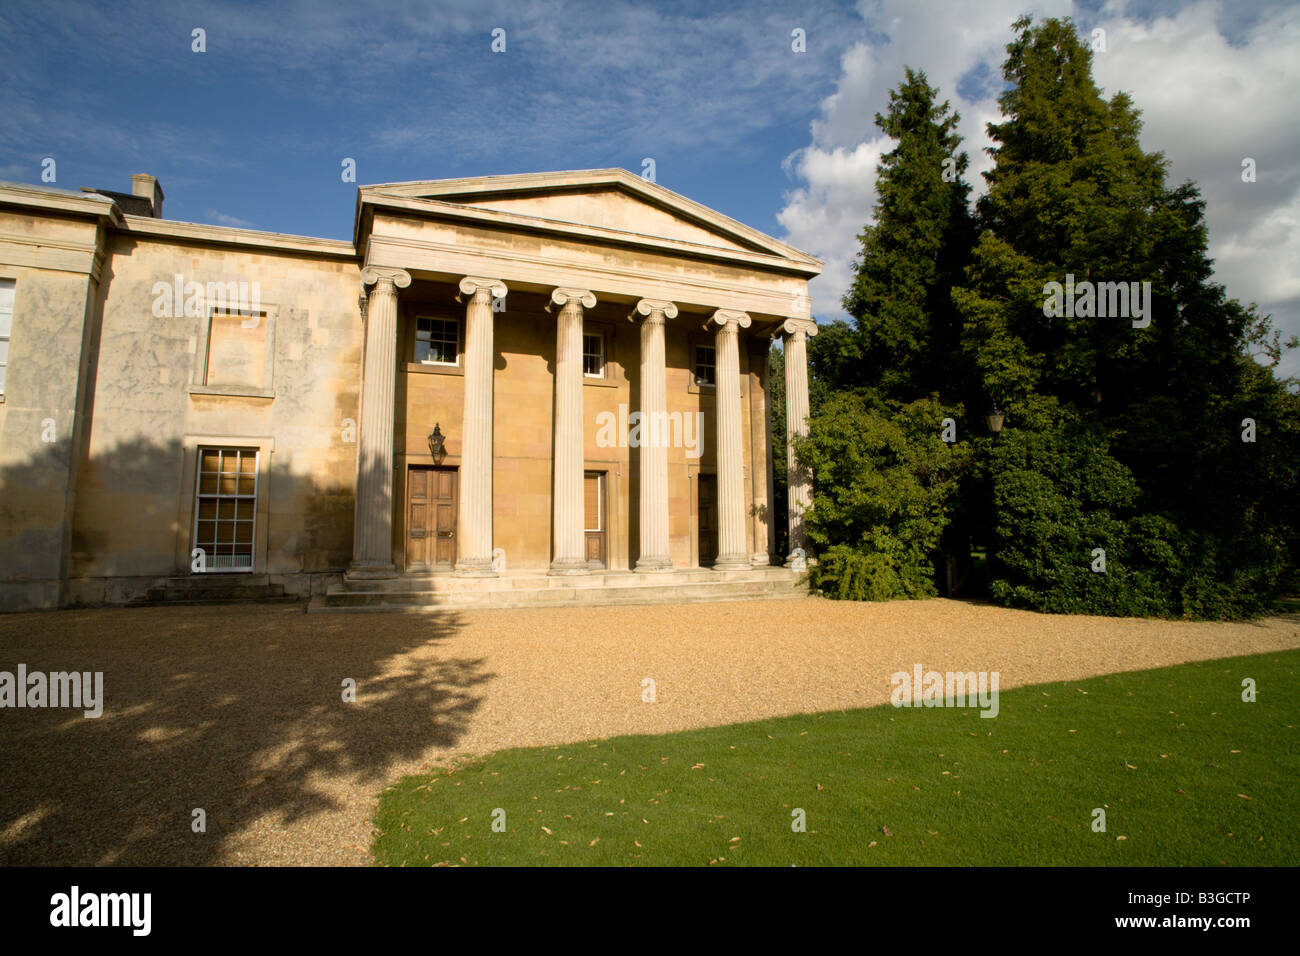 The Master's Lodge, Downing College, Cambridge, England in afternoon sunshine - Stock Image